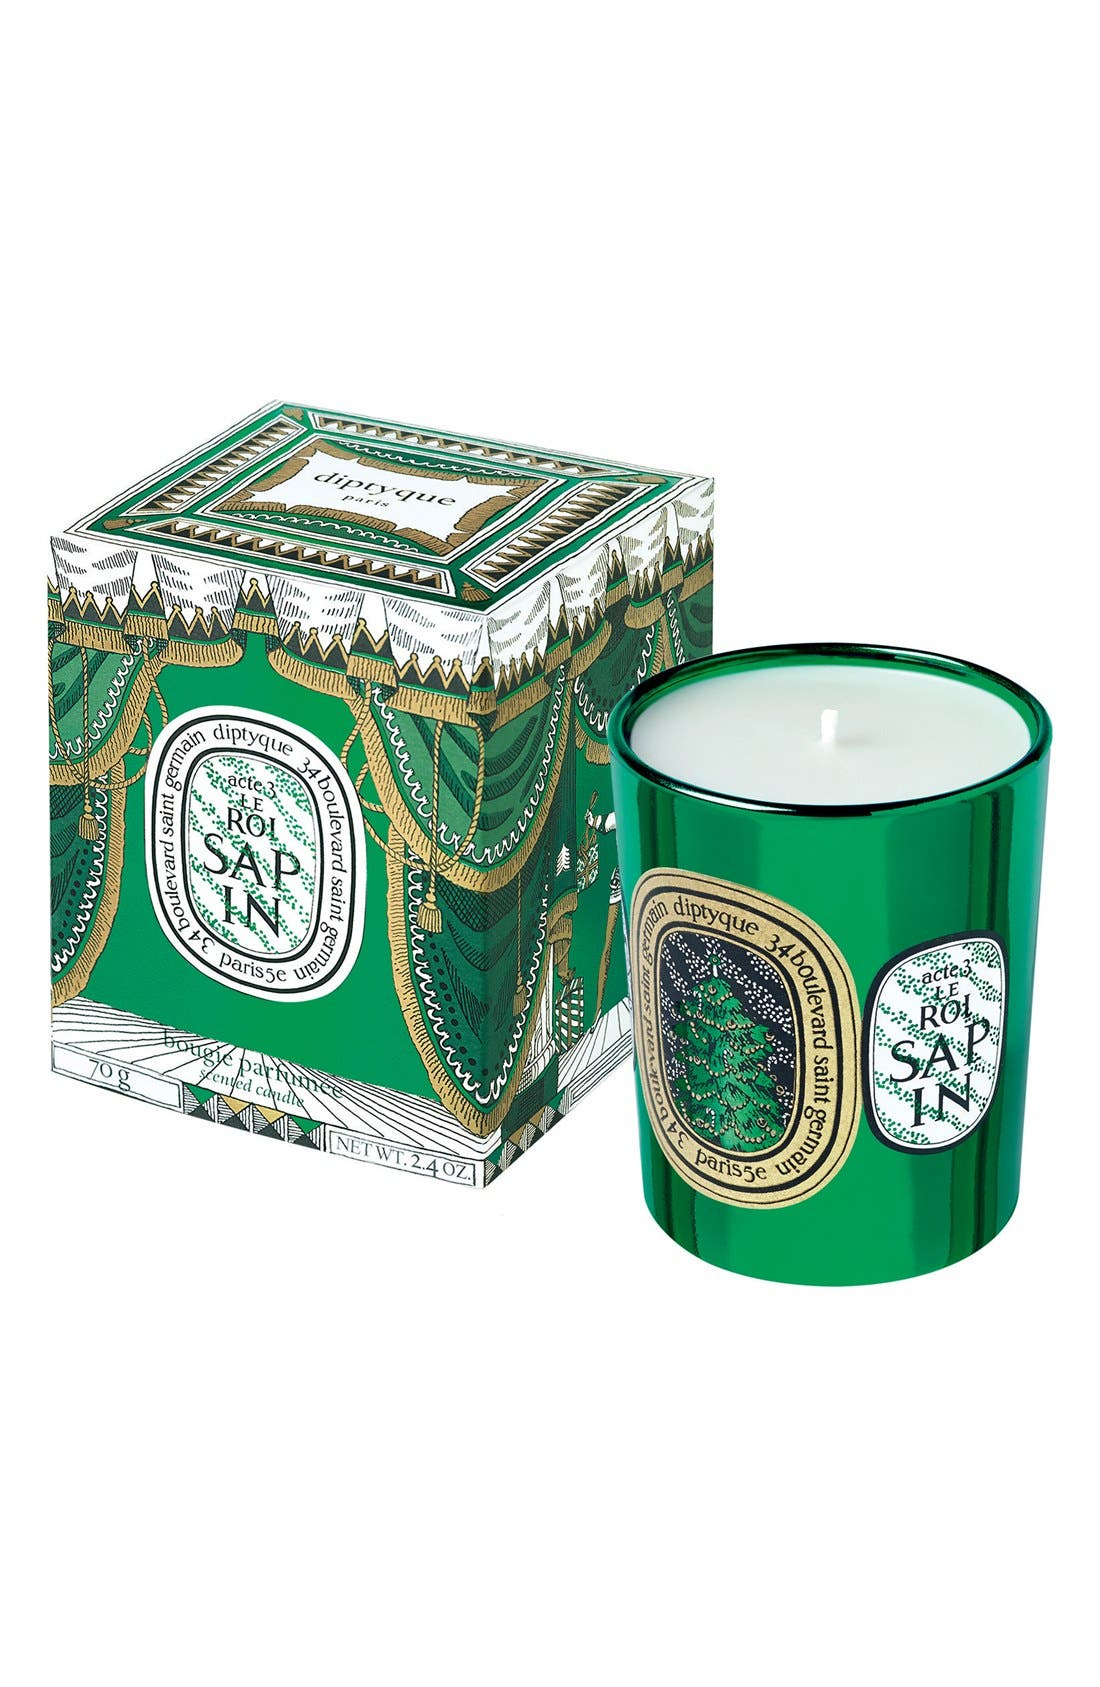 Main Image - diptyque A Night at diptyque Act 3 Le Roi Sapin/The Festive Fir Tree Mini Candle (Limited Edition)